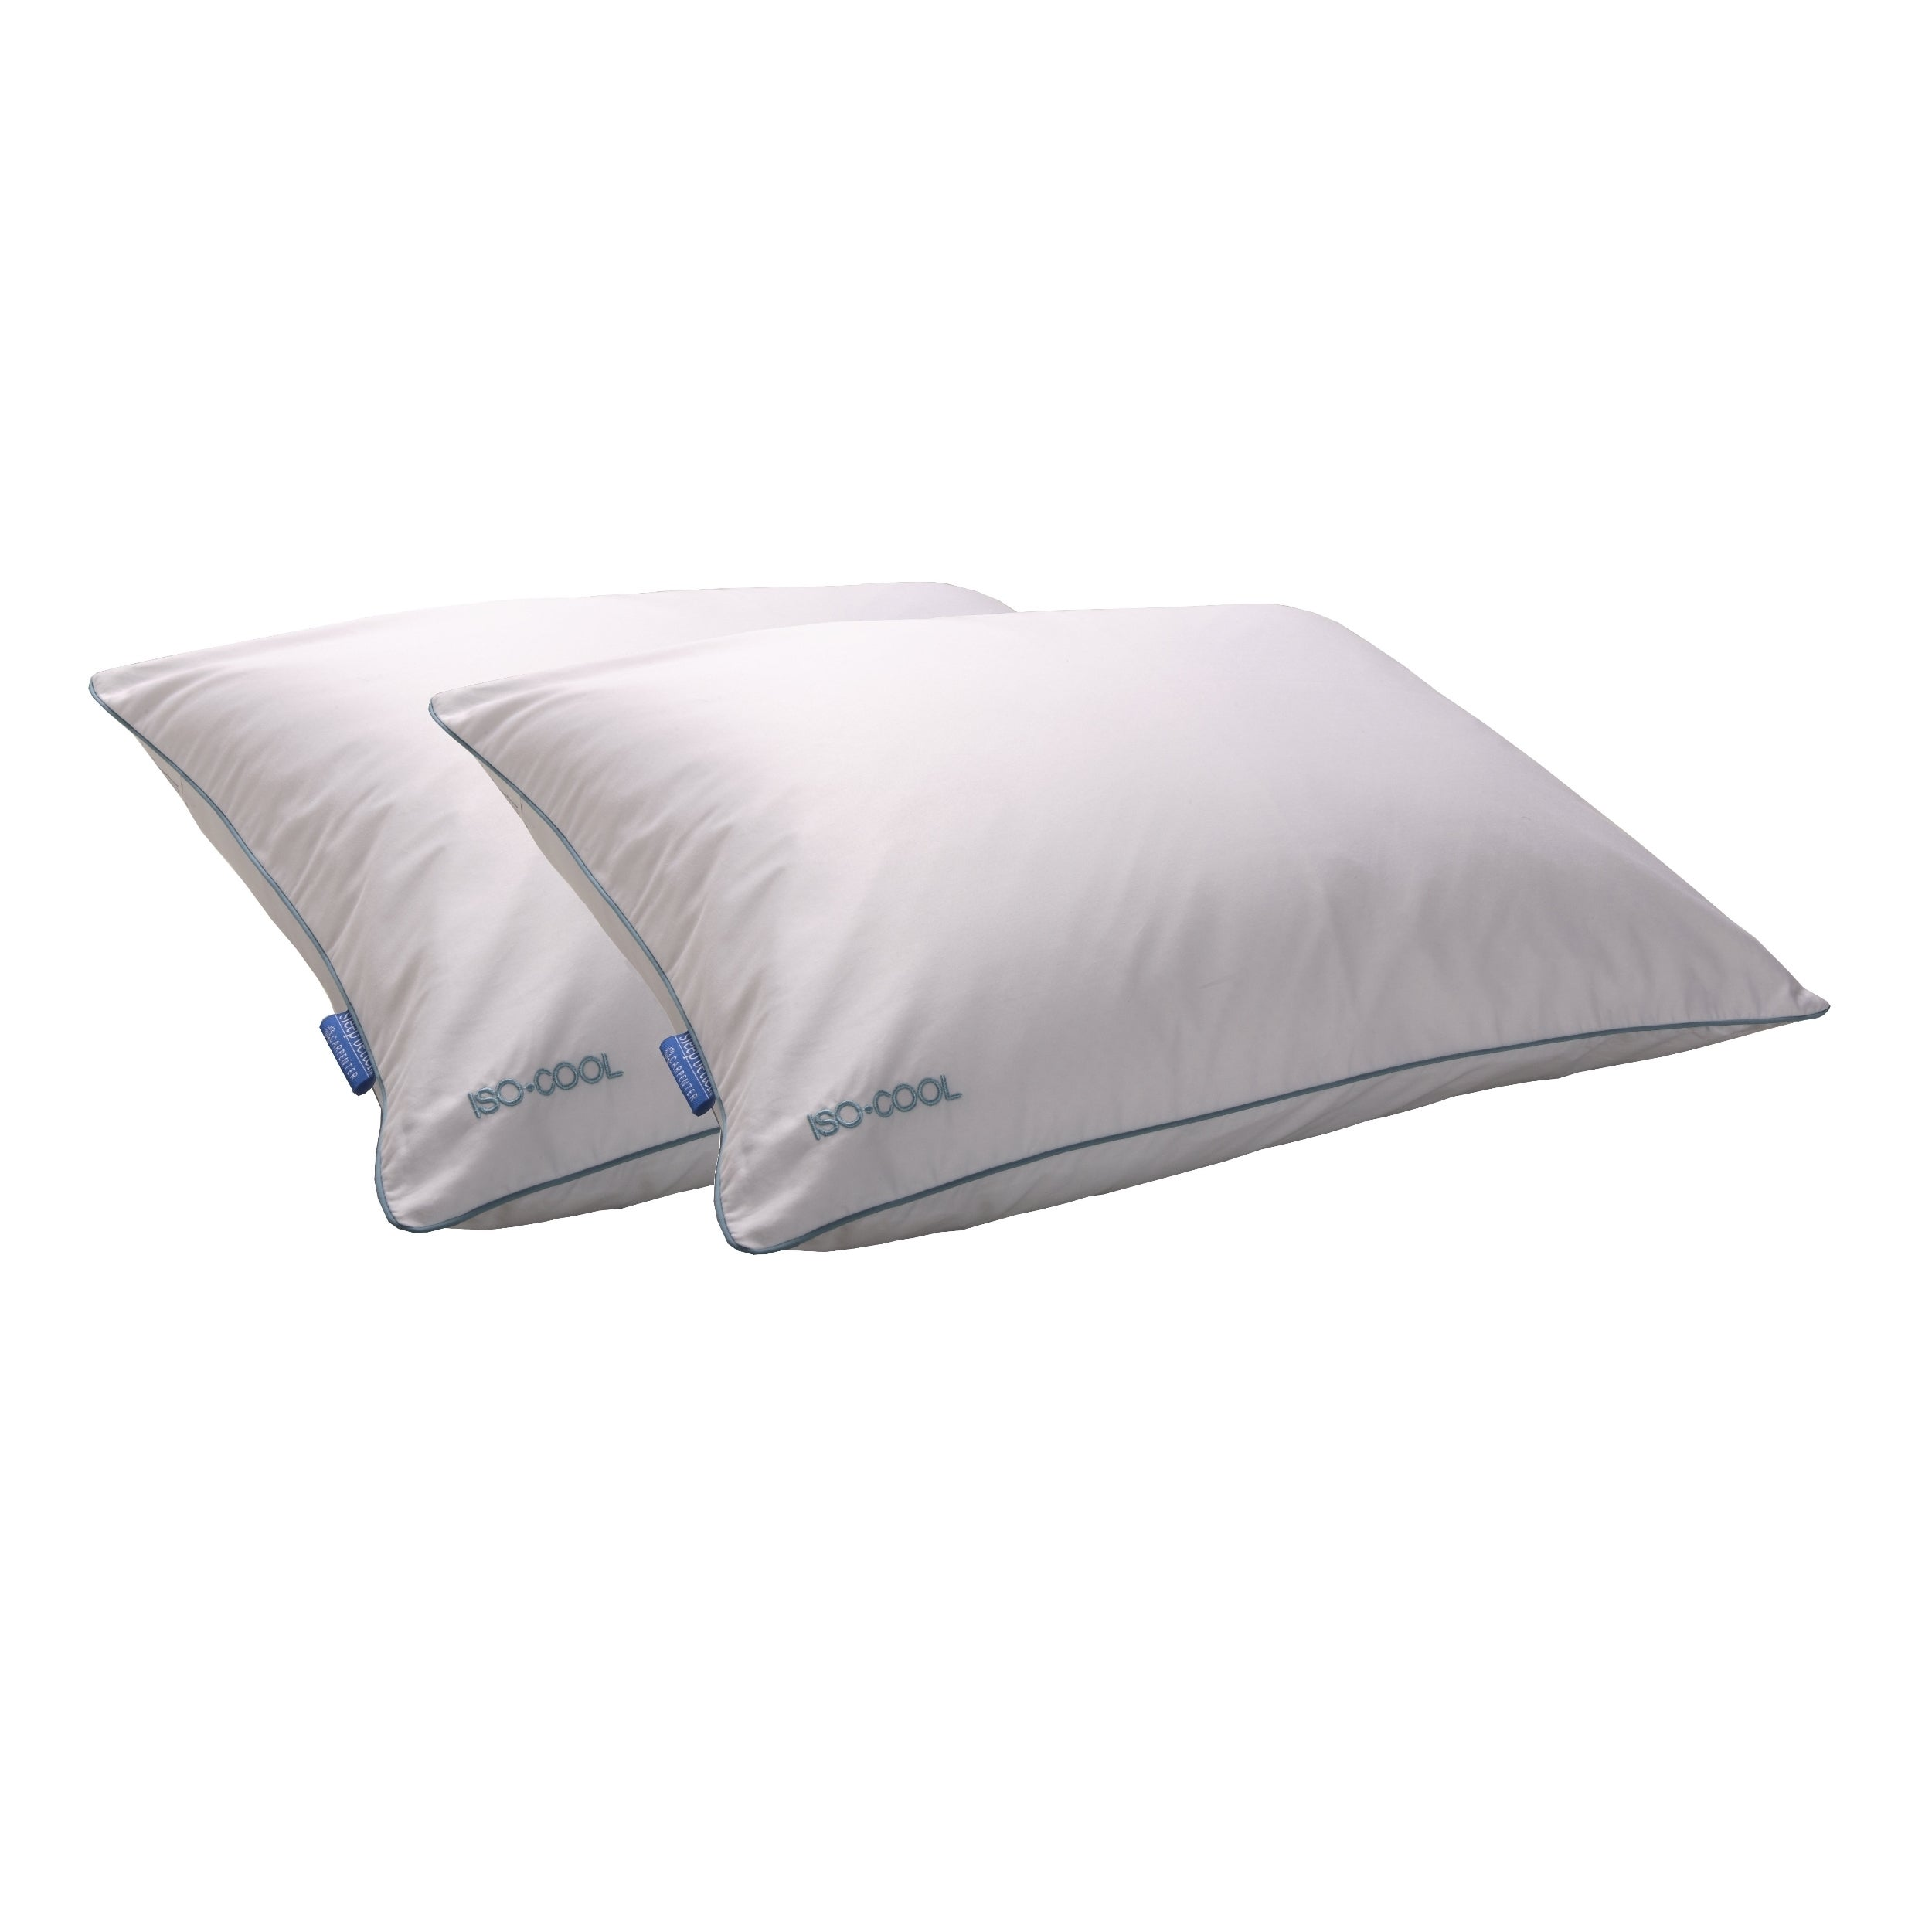 Splendorest Iso-Cool Traditional Polyester Pillow with Ou...